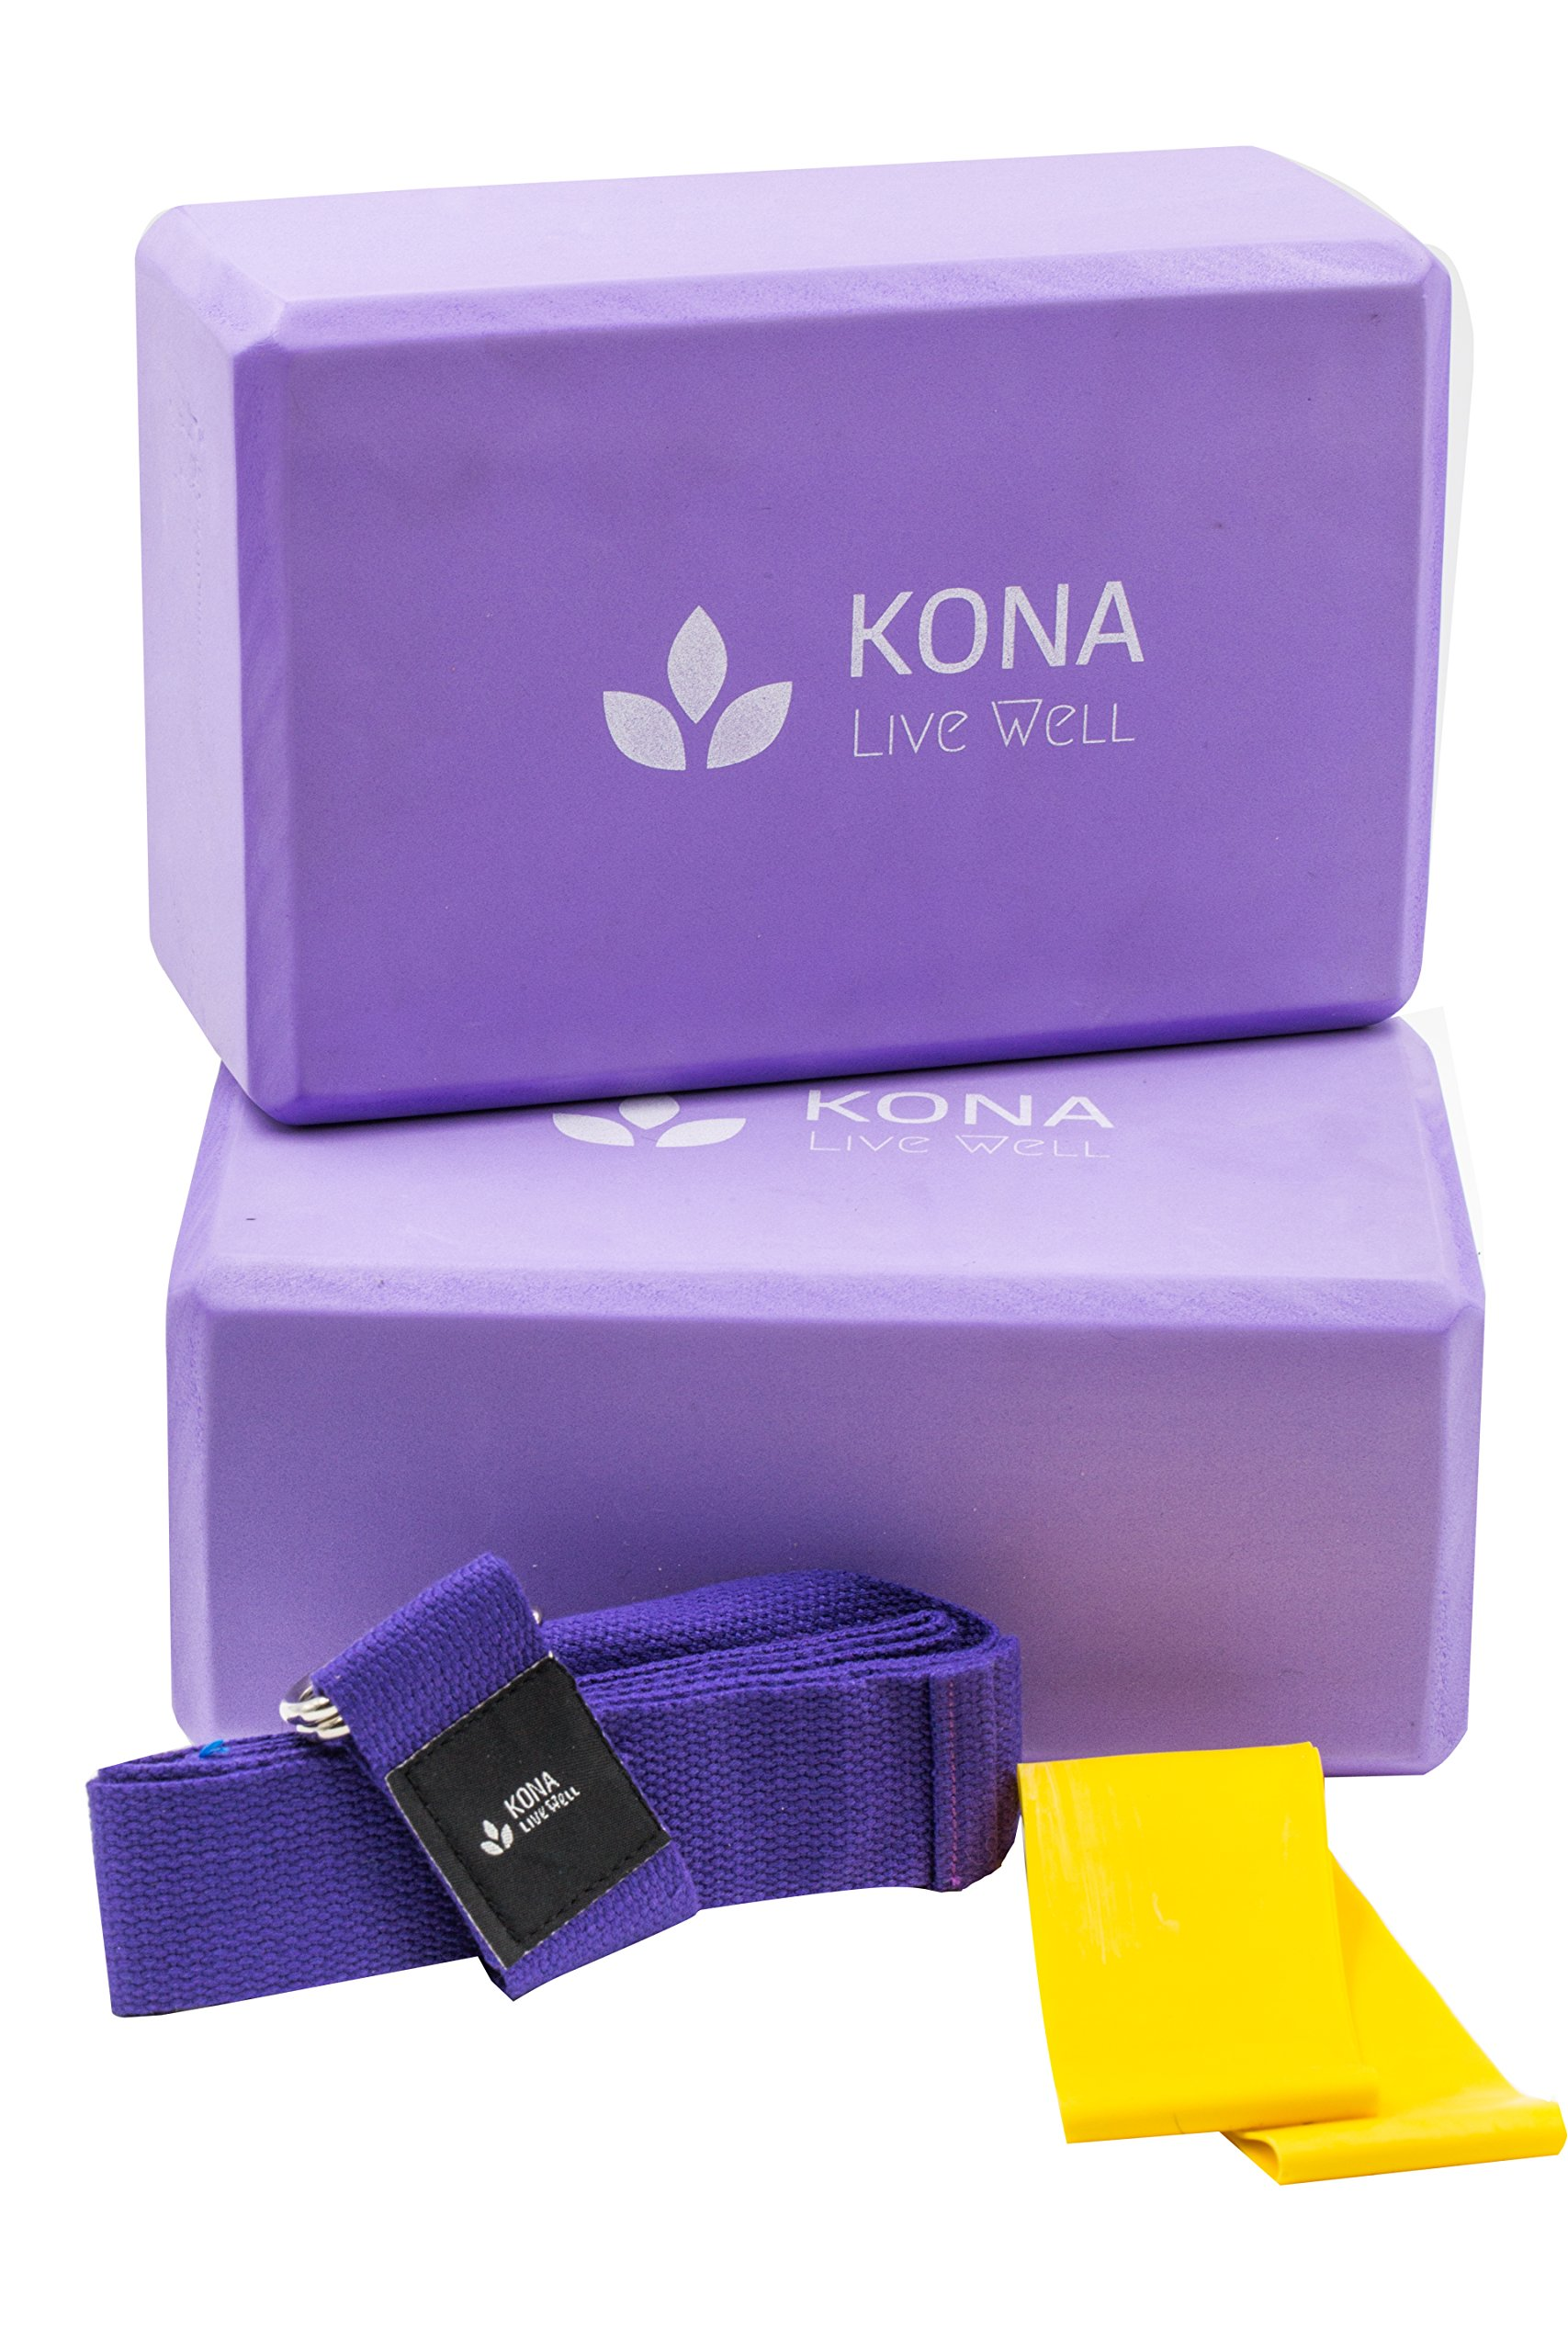 Premium KONA Yoga Set (4PC) - 2 High Density EVA Foam Blocks large 4''x 6''x 9'', 1 Cotton Yoga Strap with D-ring standard 6'' length, and 1 Resistance Band Loop - Lightweight, Odor & Moisture Resistant